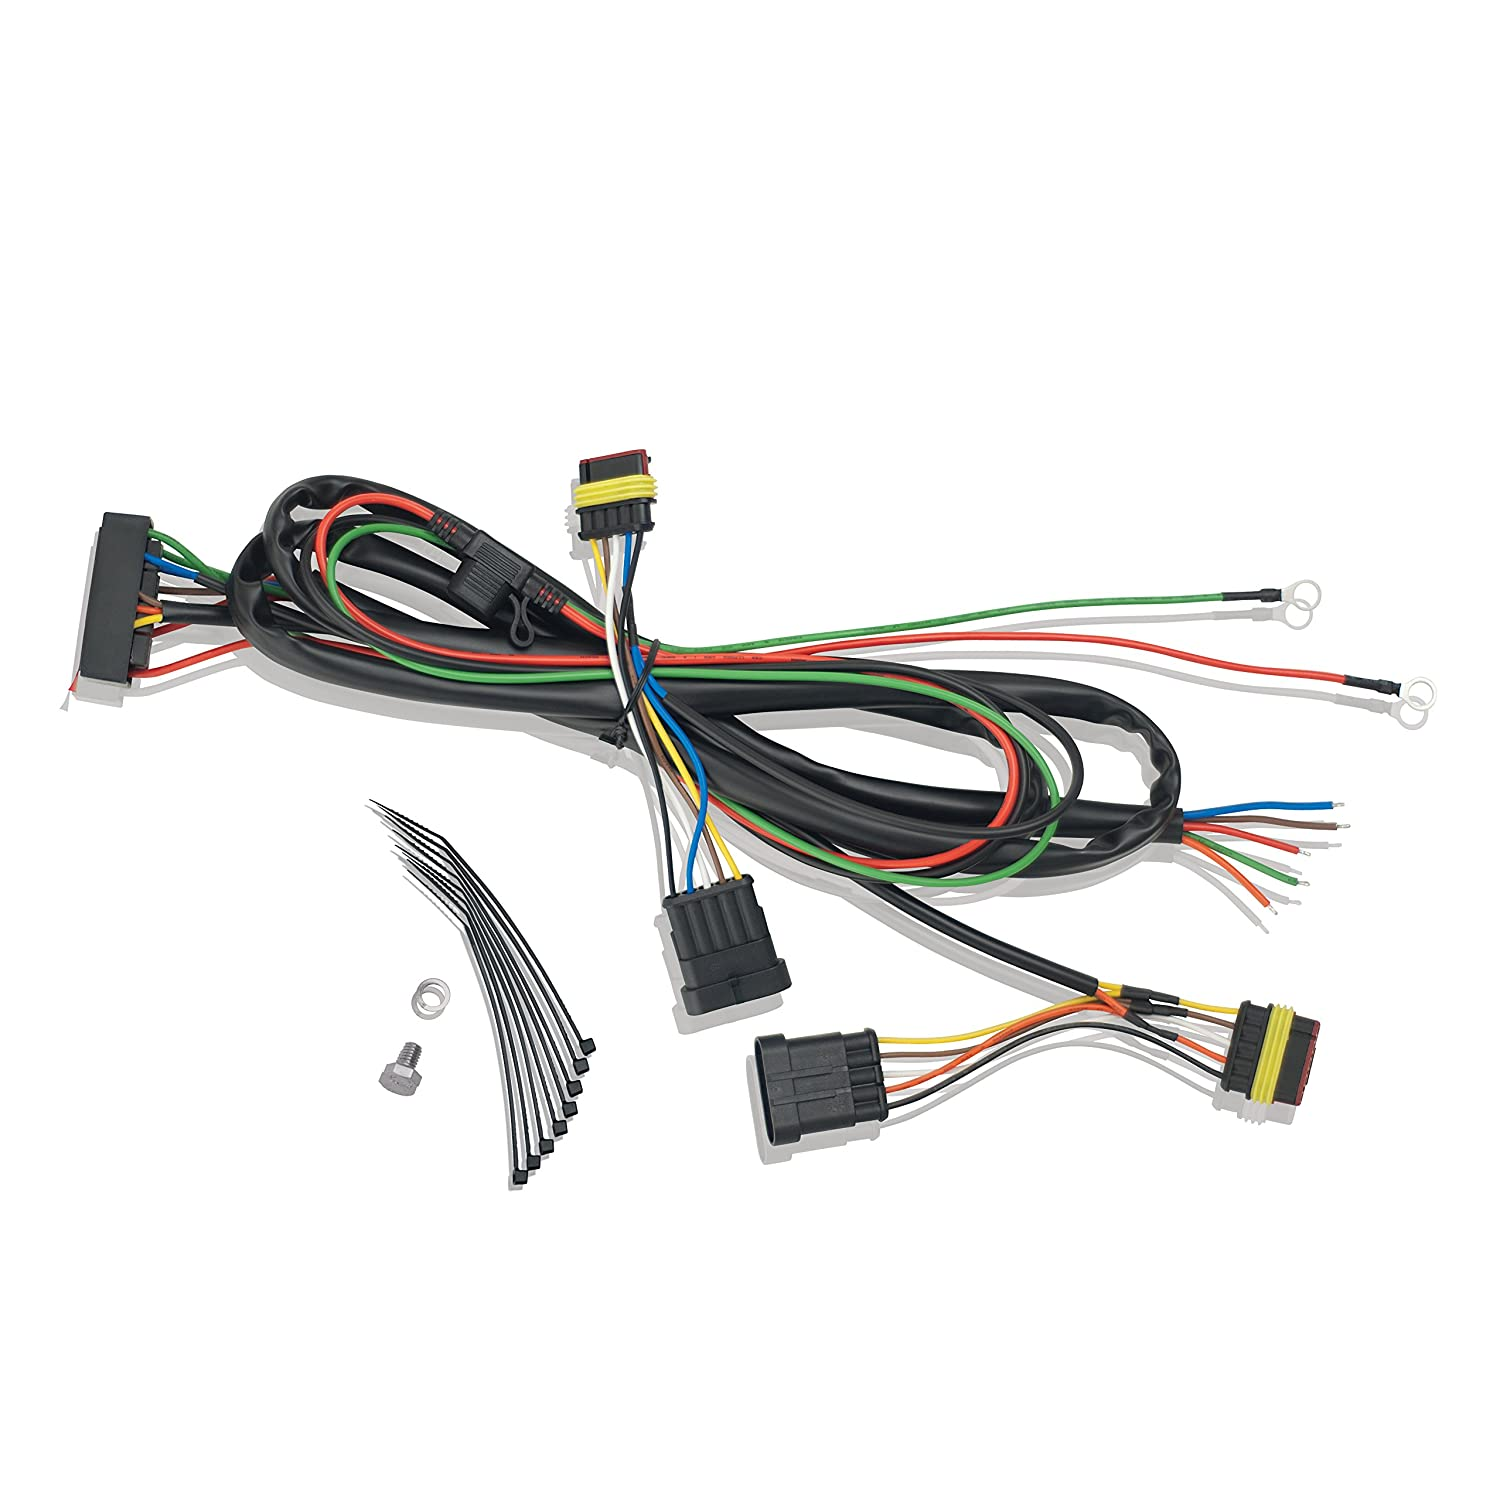 81dZHpG1lCL._SL1500_ amazon com show chrome accessories 41 162 trailer wire harness wiring harness trade show at virtualis.co